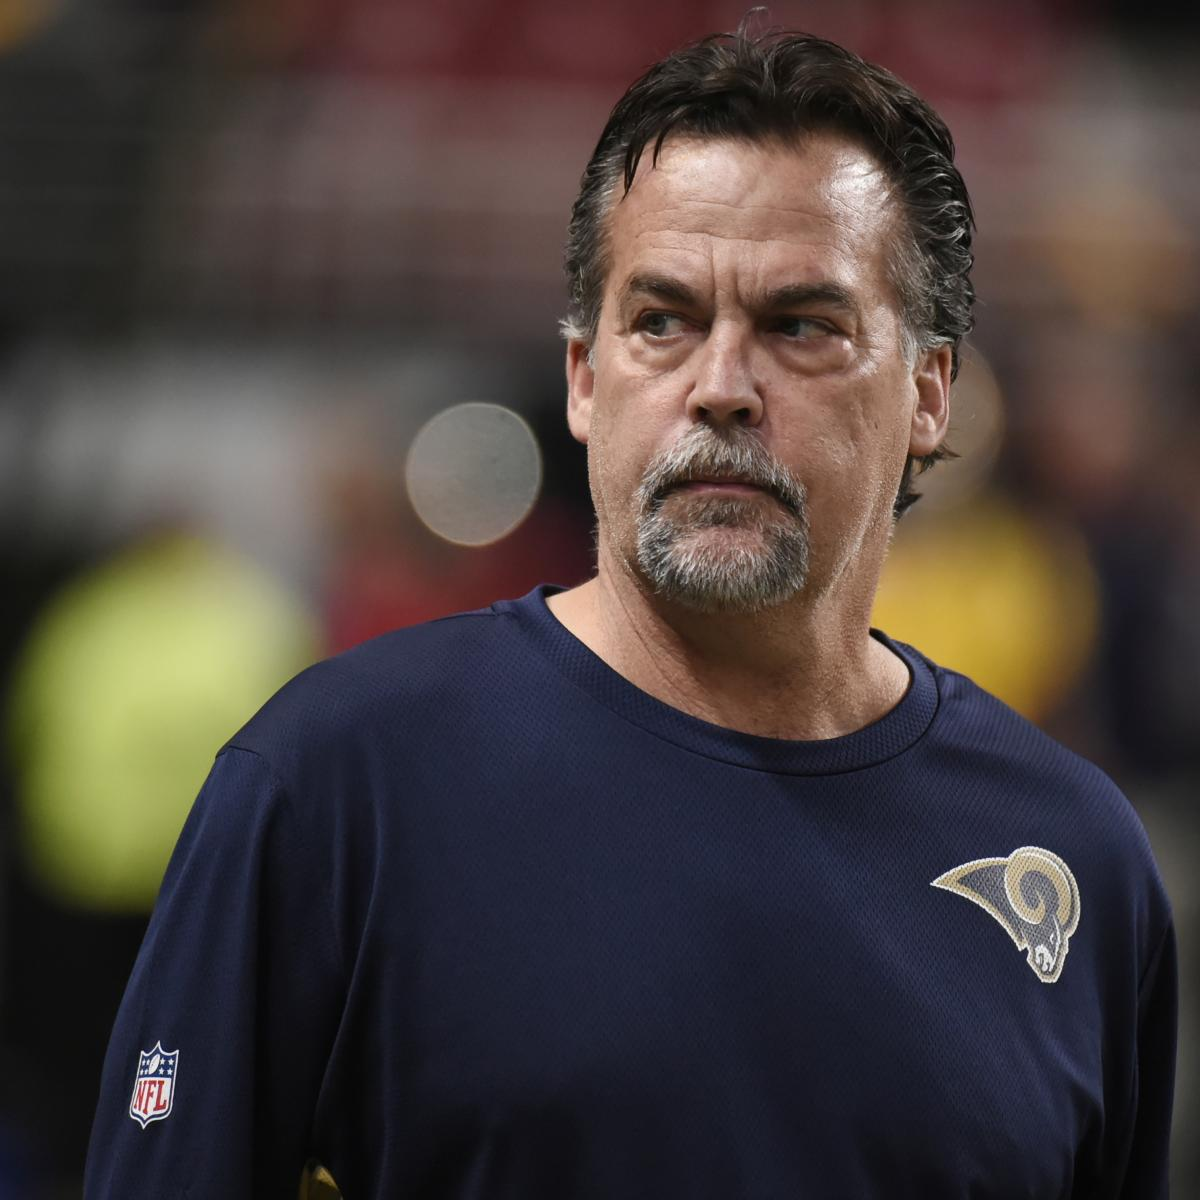 Jeff Fisher S Mediocrity Wasting St Louis Rams Team